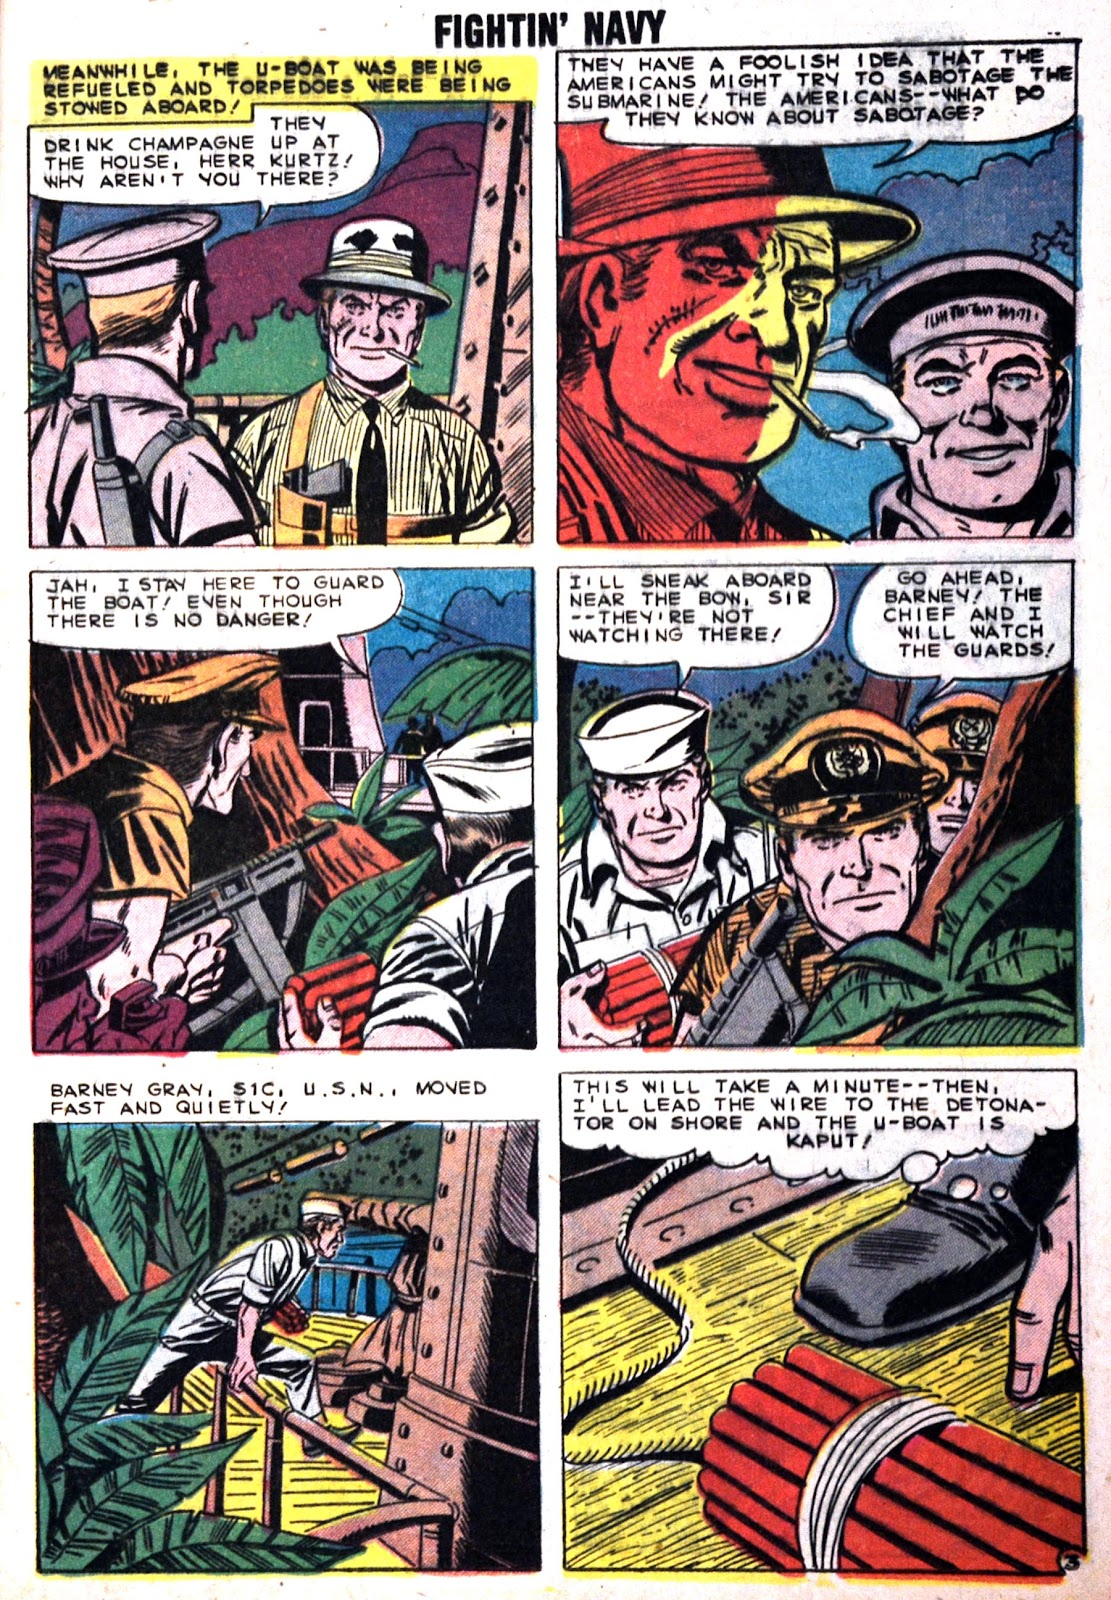 Read online Fightin' Navy comic -  Issue #89 - 13